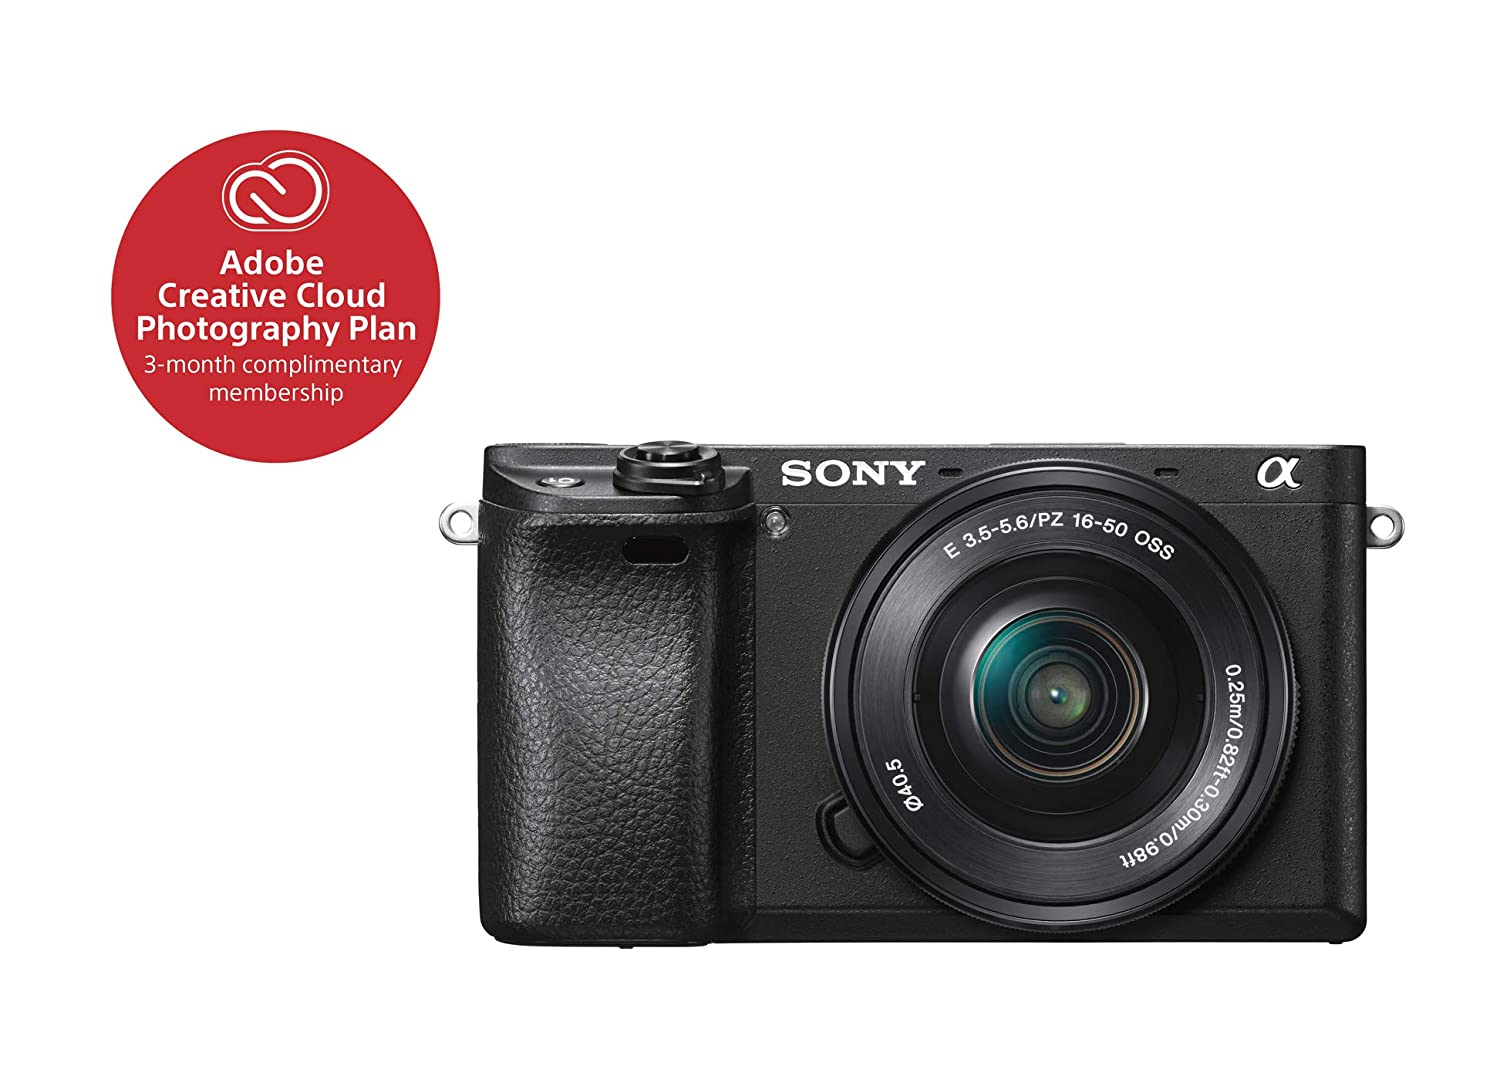 Sony Alpha a6300 Mirrorless Digital Camera with 3' LCD, Silver (ILCE6300L/S) w/ 16-50 Lens Sony Electronics Inc